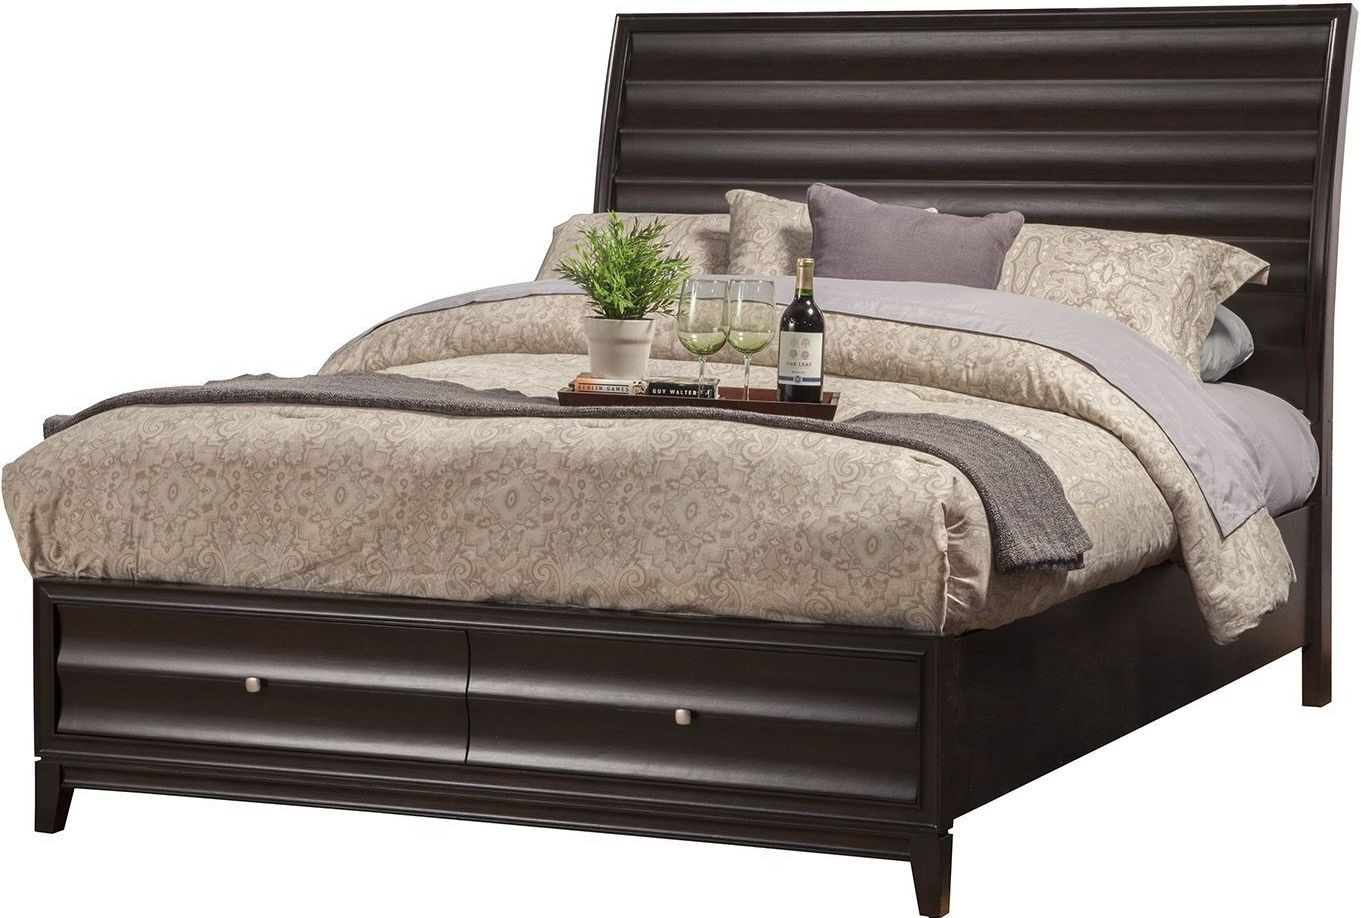 Legacy cherry cal king storage bed from alpine coleman - California king storage bedroom sets ...